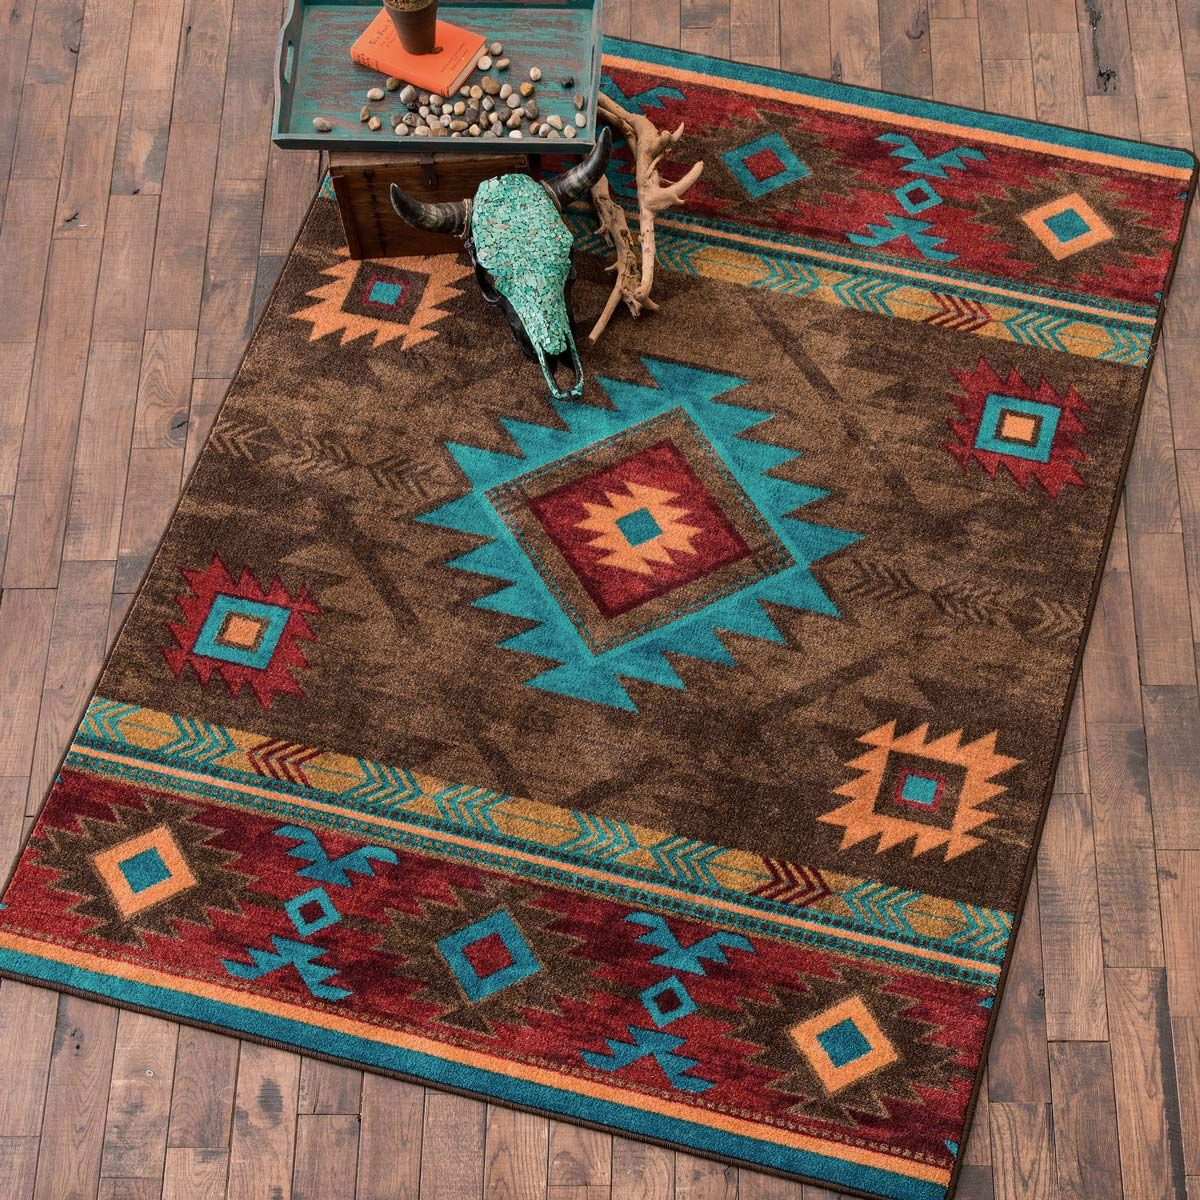 ranch gallery native rug pos american rugs by nos begay the navajo nizhoni collection frances teec weaving art churro from